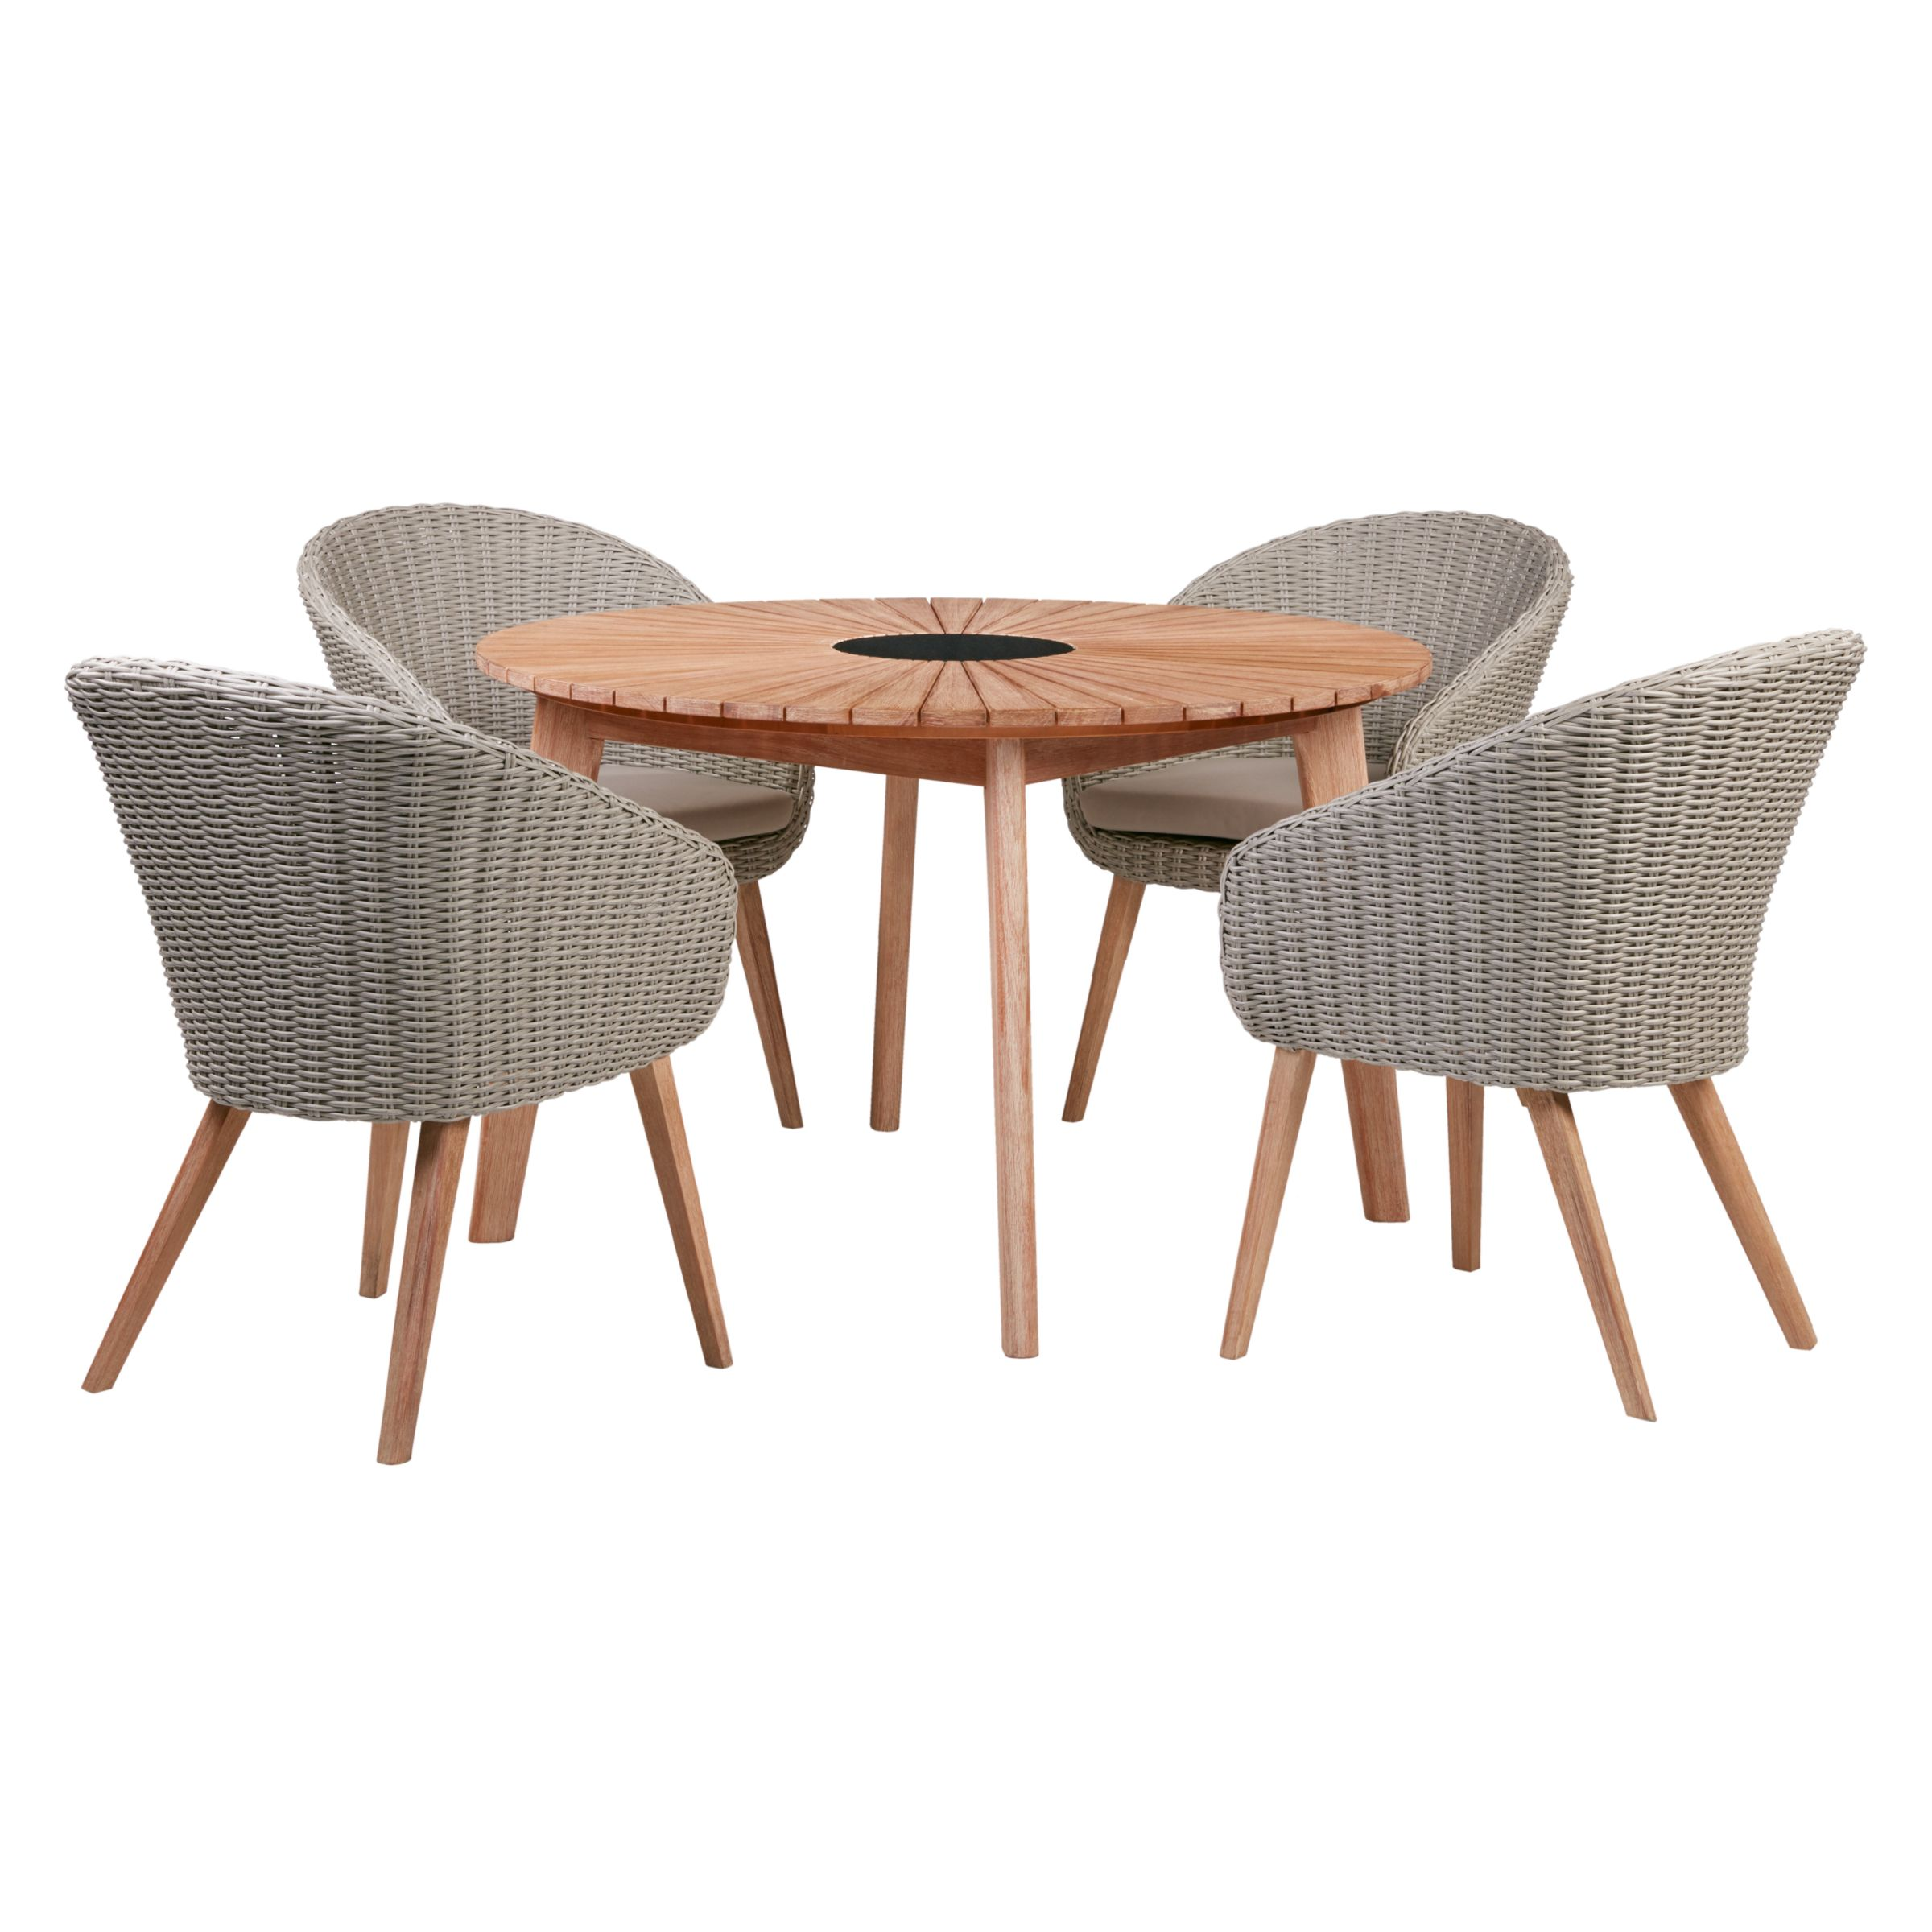 John Lewis Partners Sol 4 Seater Round Garden Dining Table Chairs Set Fsc Certified Eucalyptus Natural